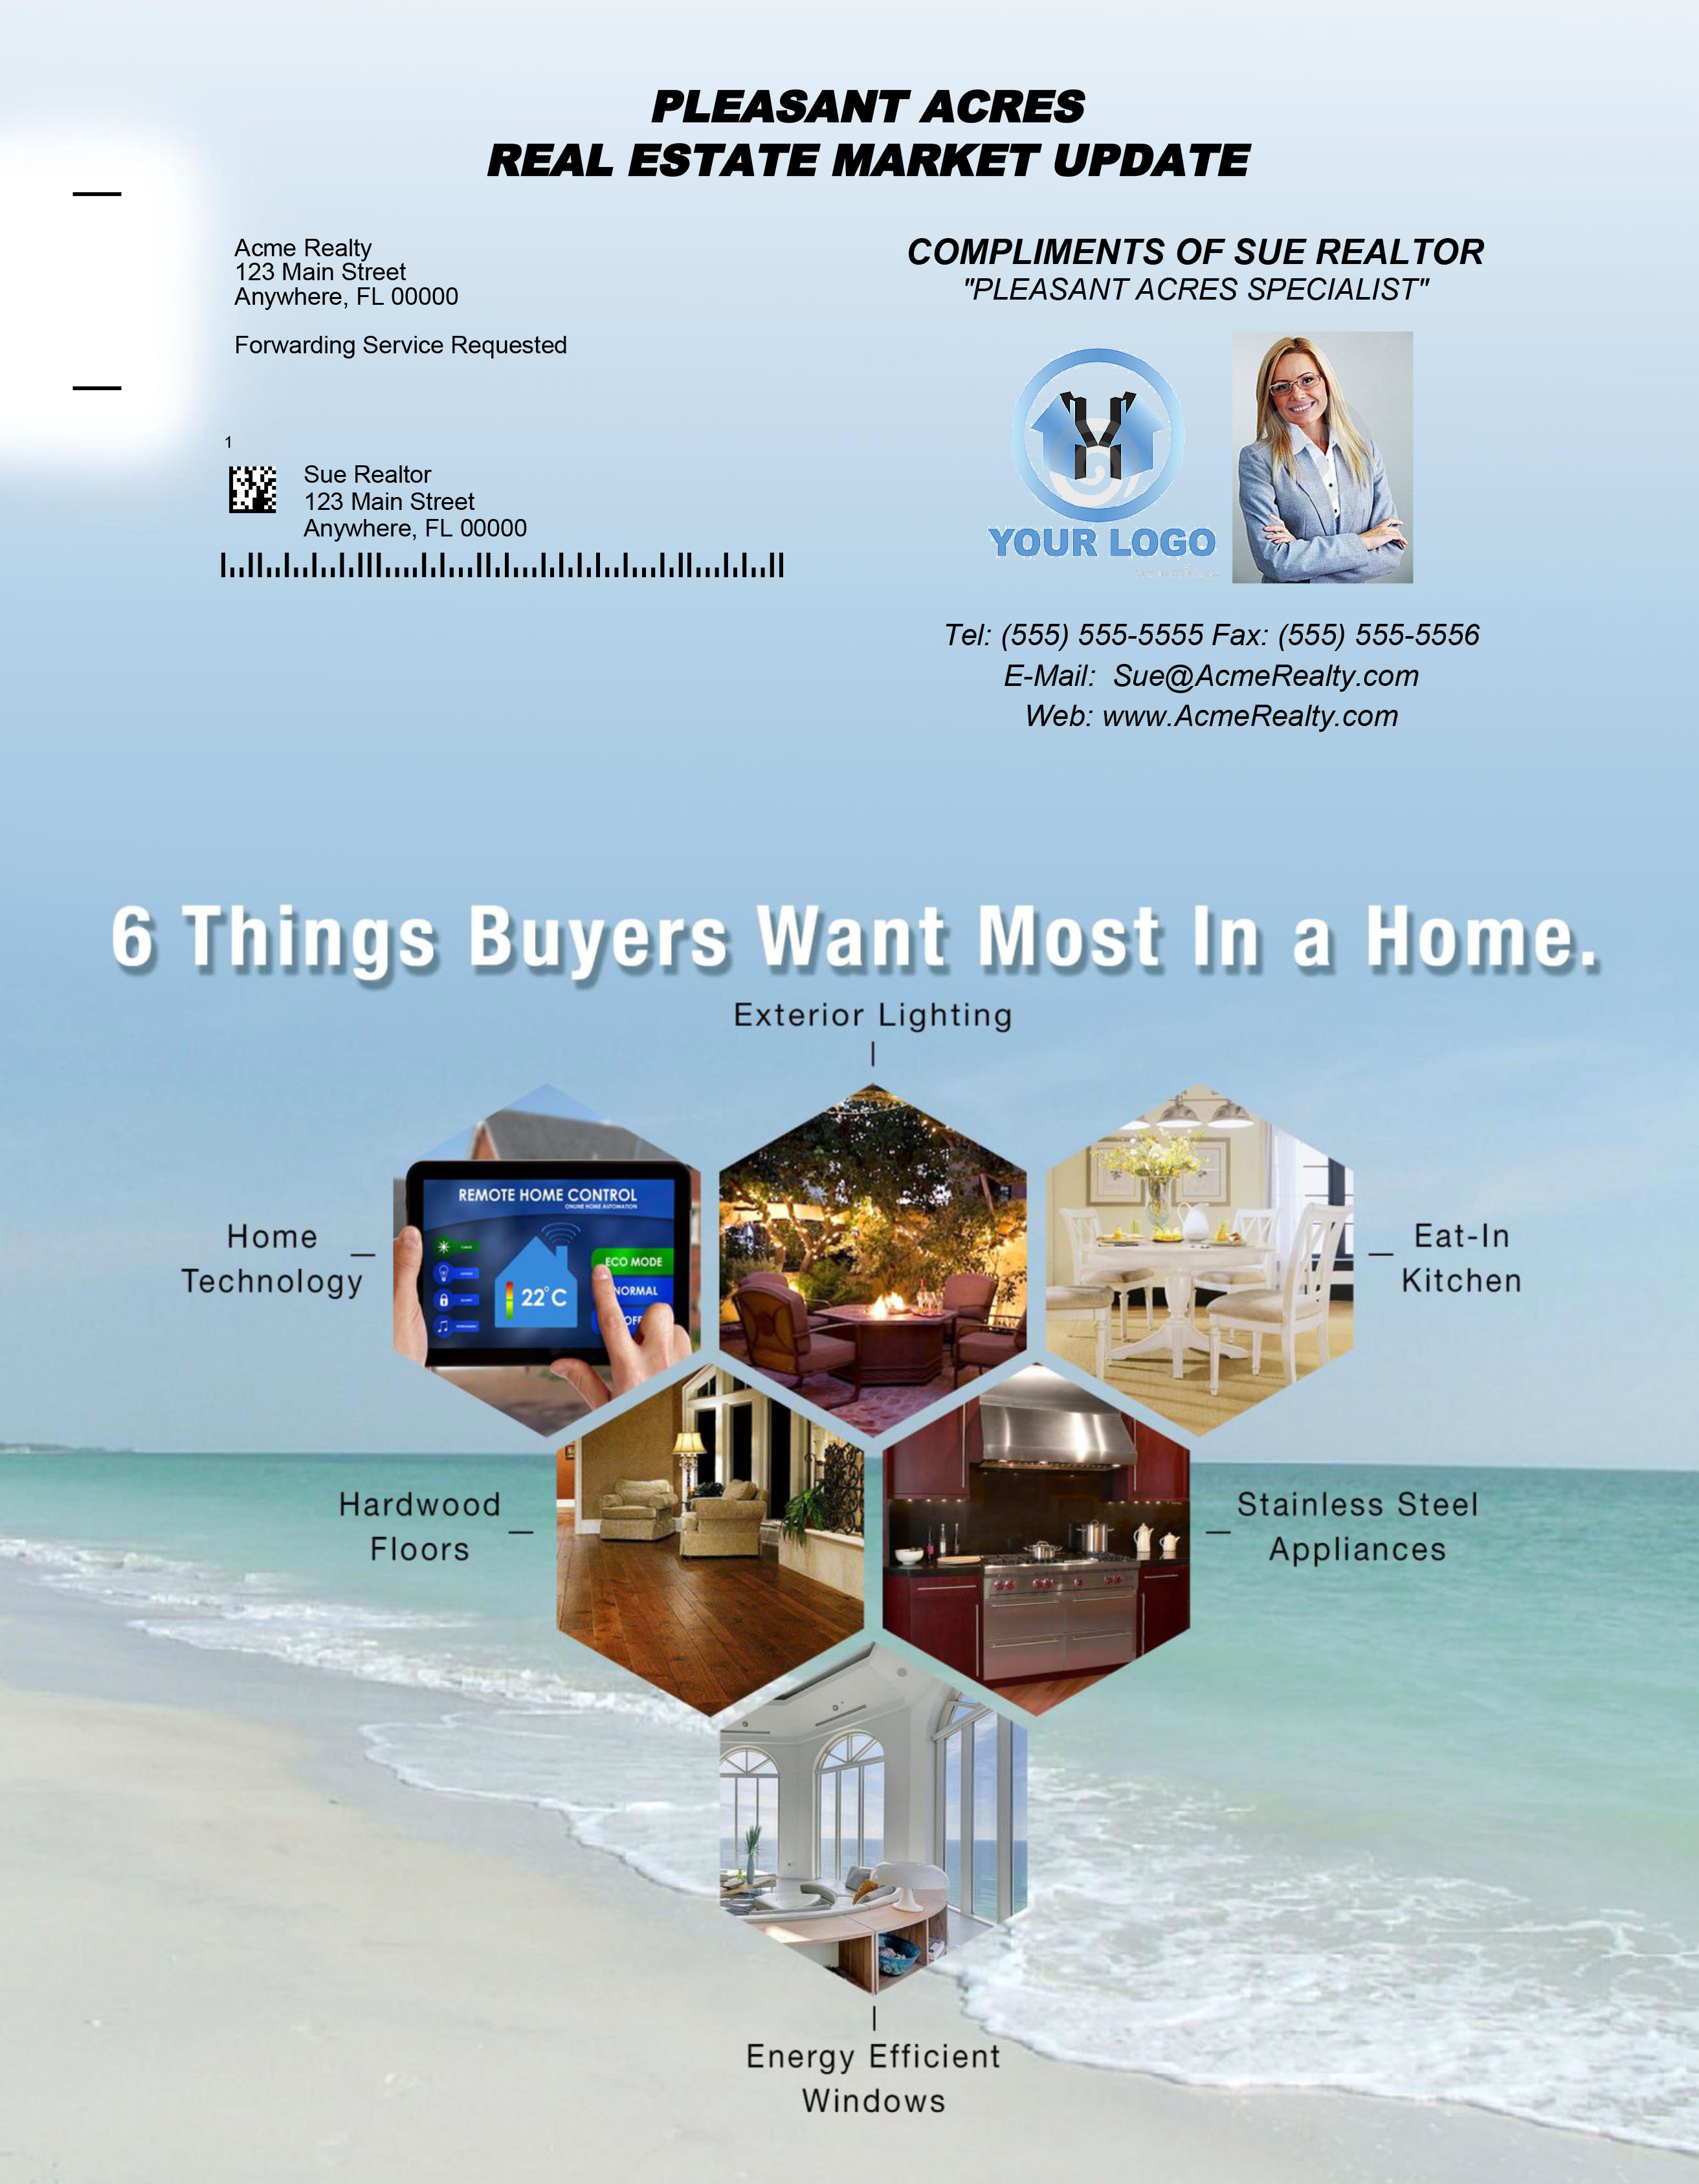 6 Things Buyers Want Most in a Home